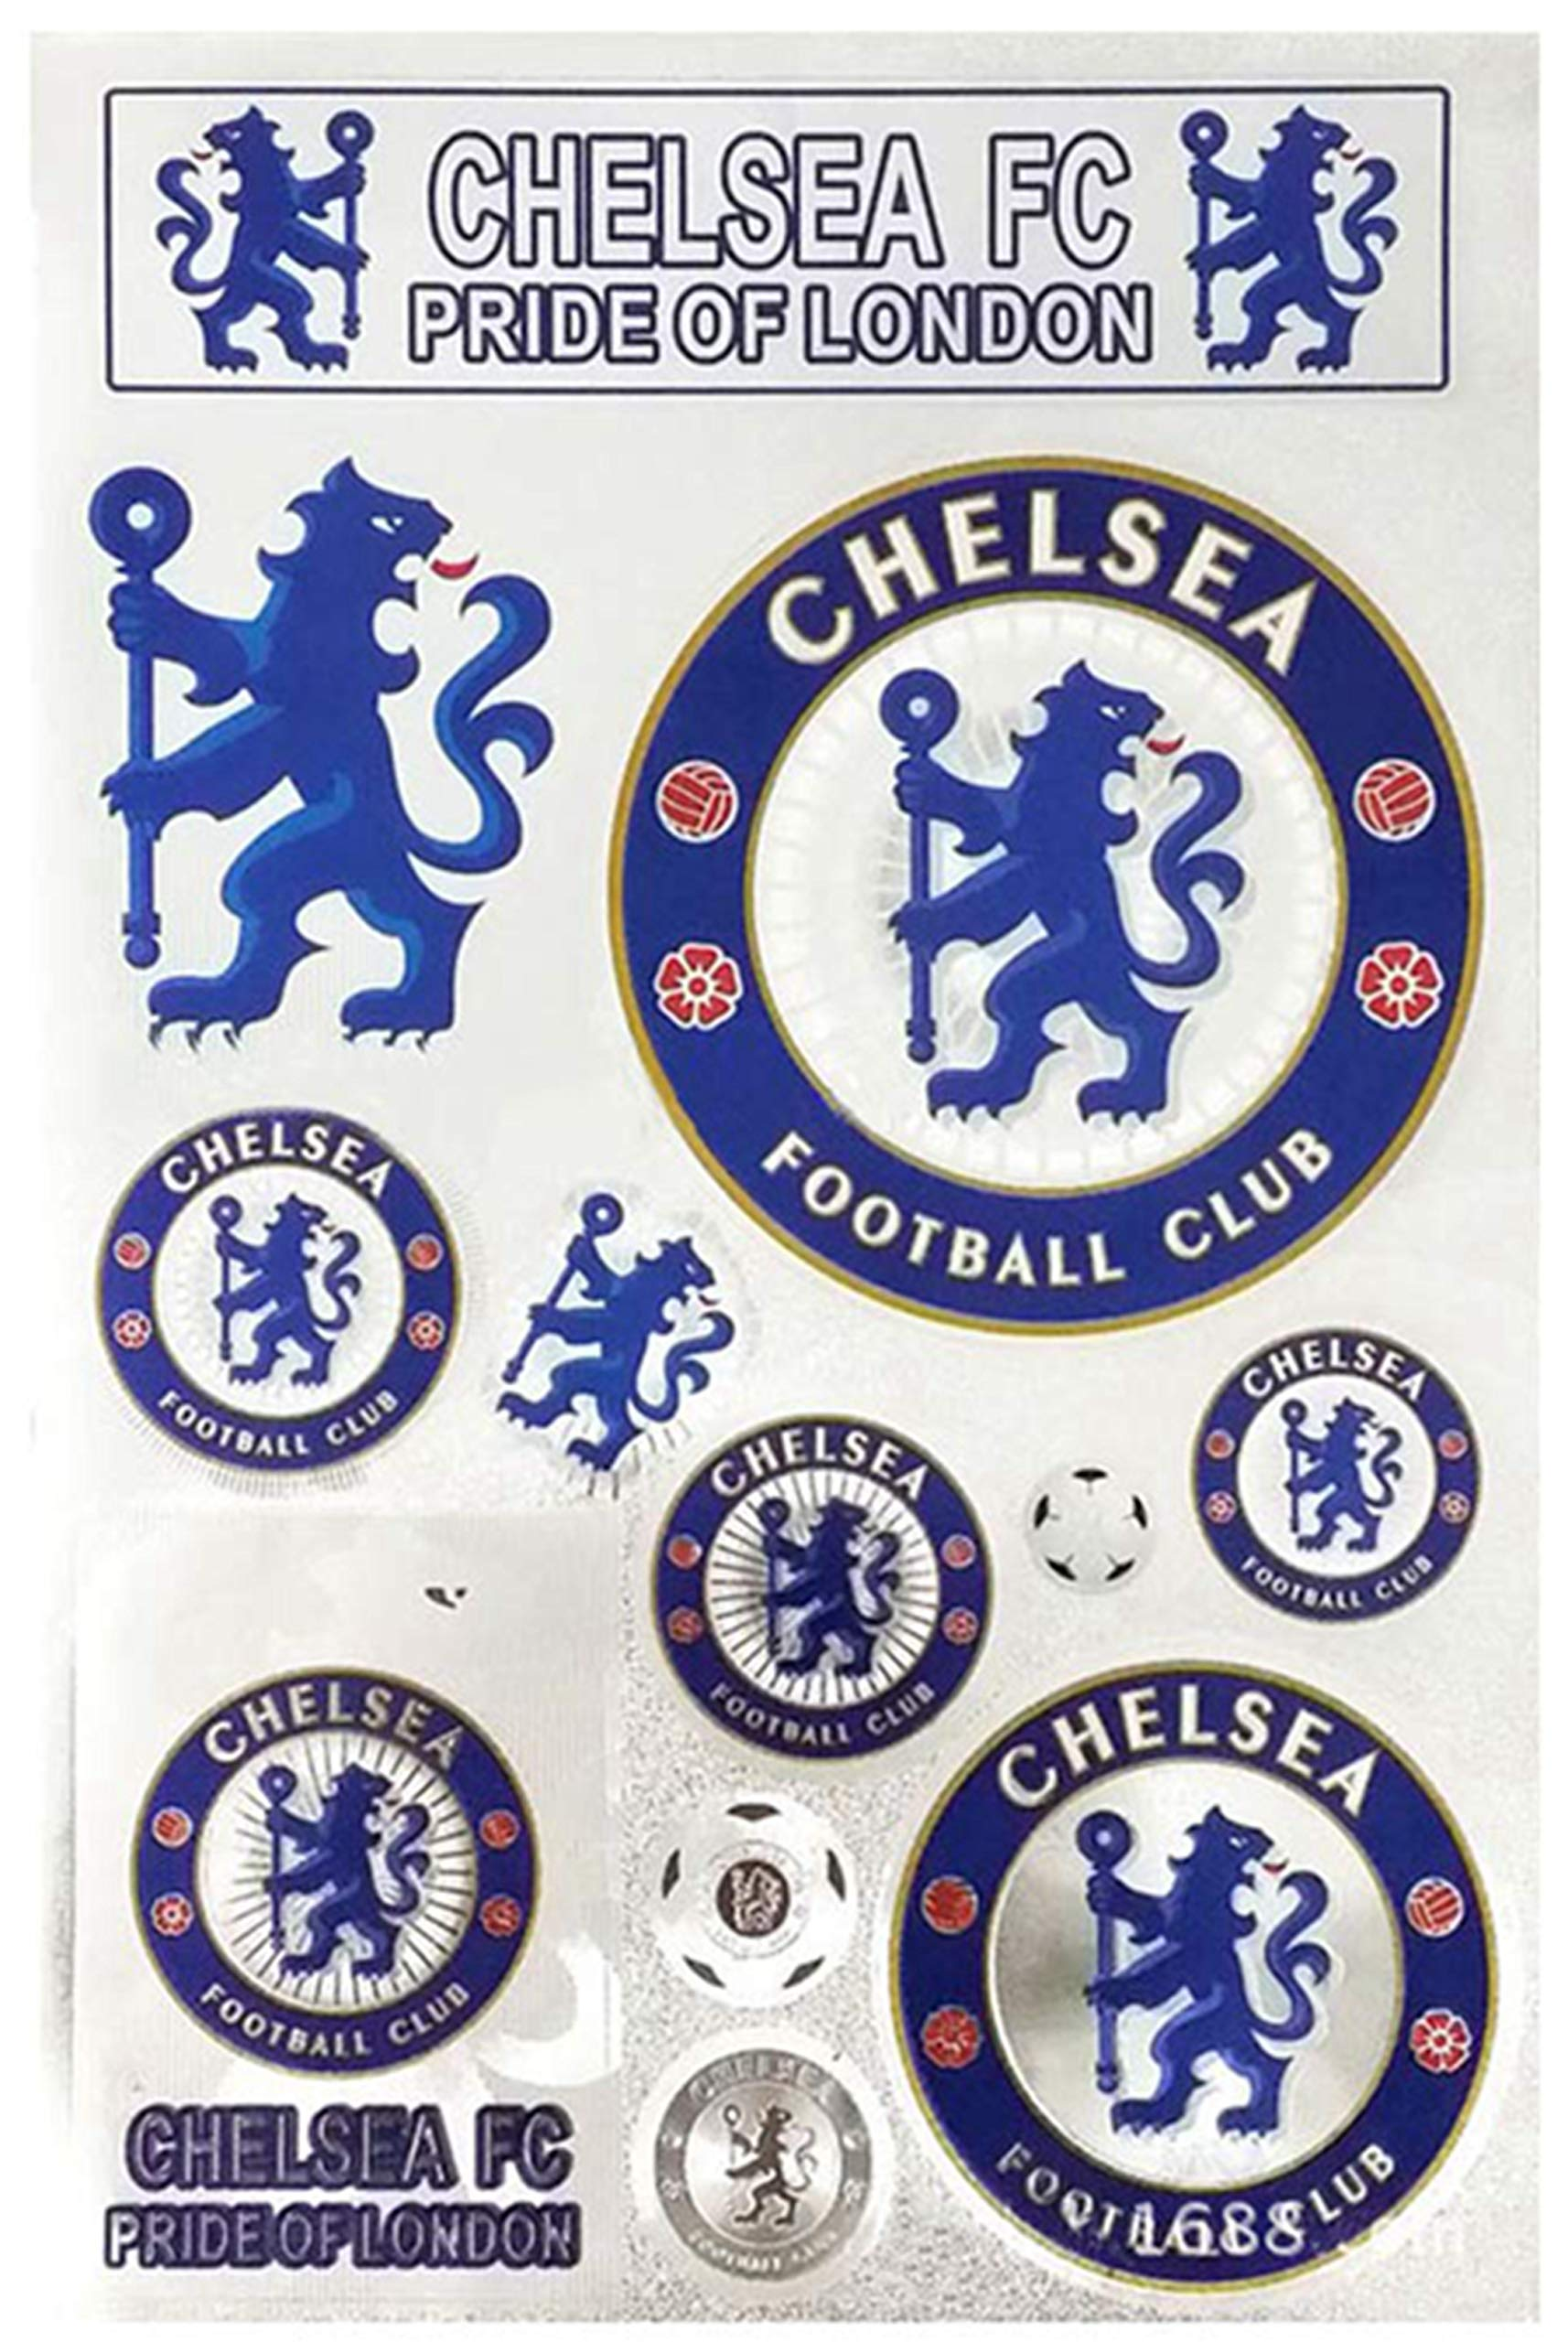 Cfc Chelsea Football Club Soccer Team Logo Sticker Decal For Car Glass Laptop Wall Buy Online In Antigua And Barbuda At Antigua Desertcart Com Productid 1829138 [ 2560 x 1714 Pixel ]